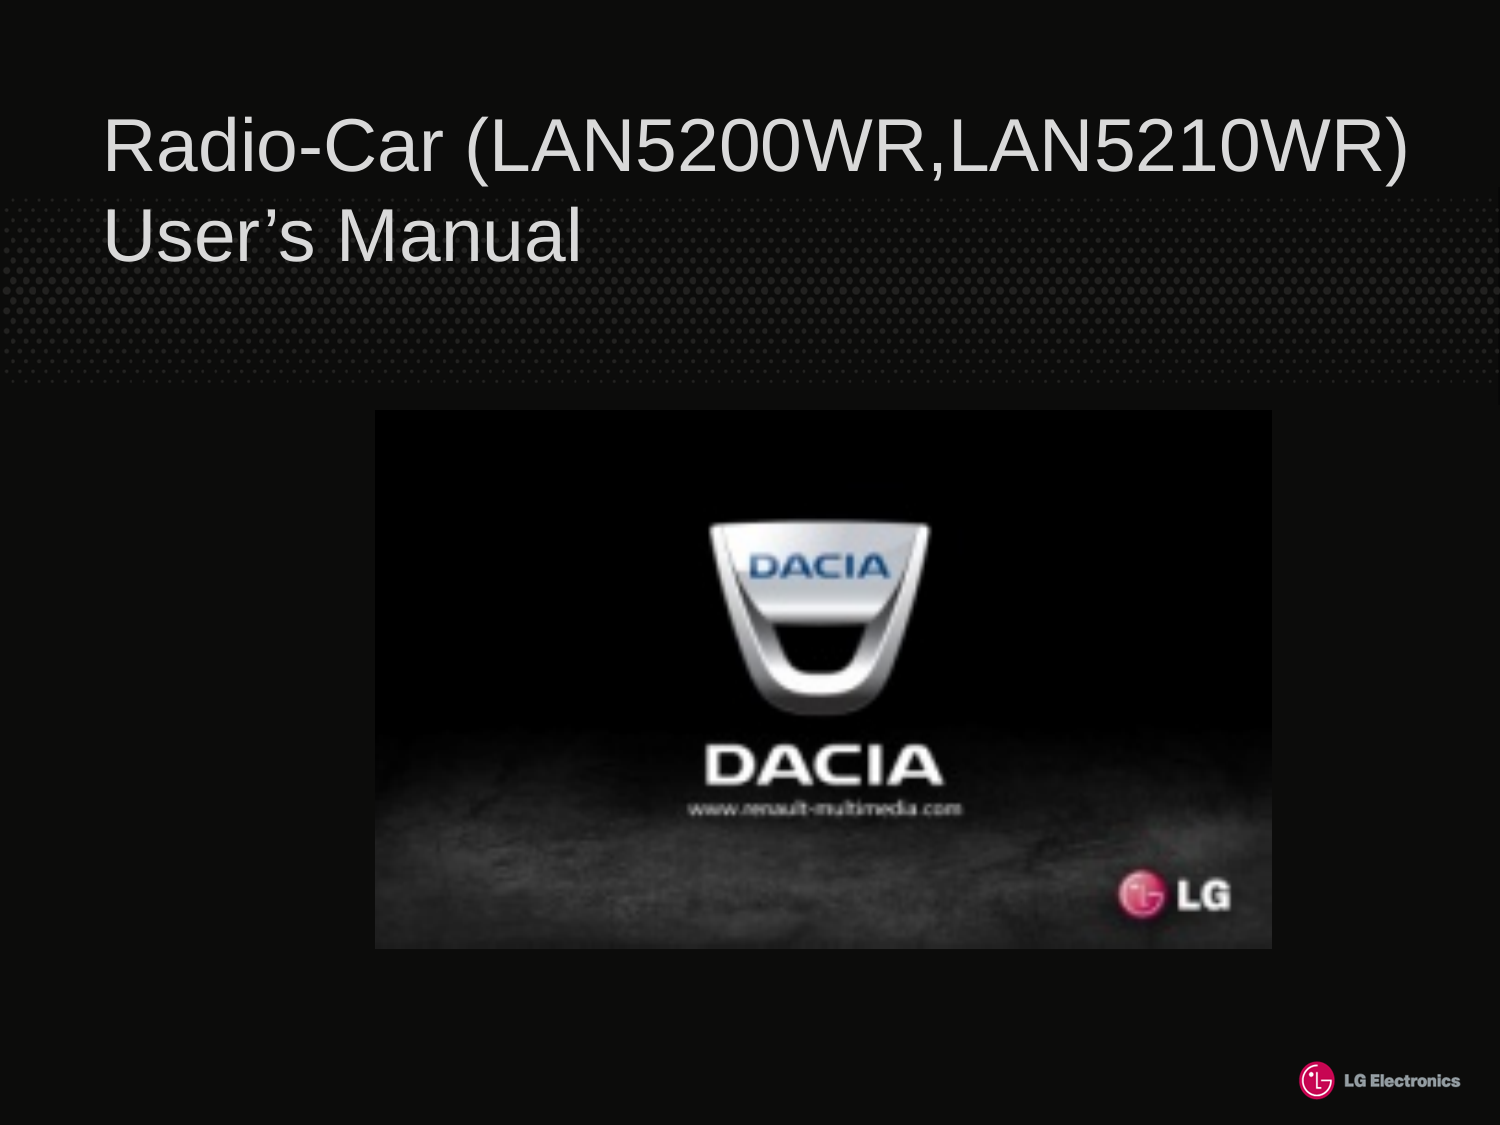 LG Electronics USA LAN5200WR Radio-Car User Manual